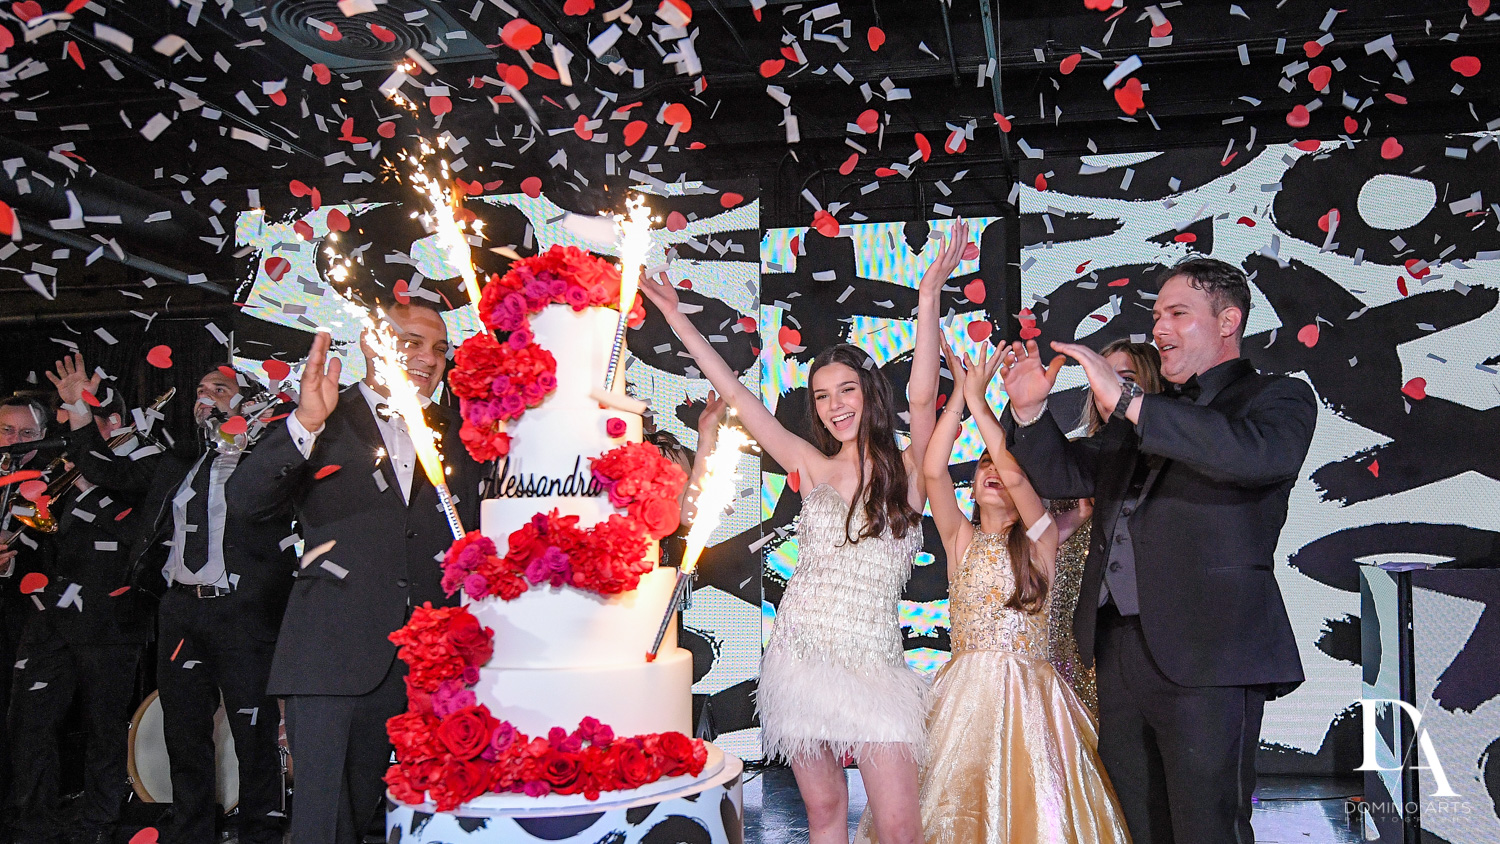 big amazing cake at Fashion Theme Bat Mitzvah at Gallery of Amazing Things by Domino Arts Photography